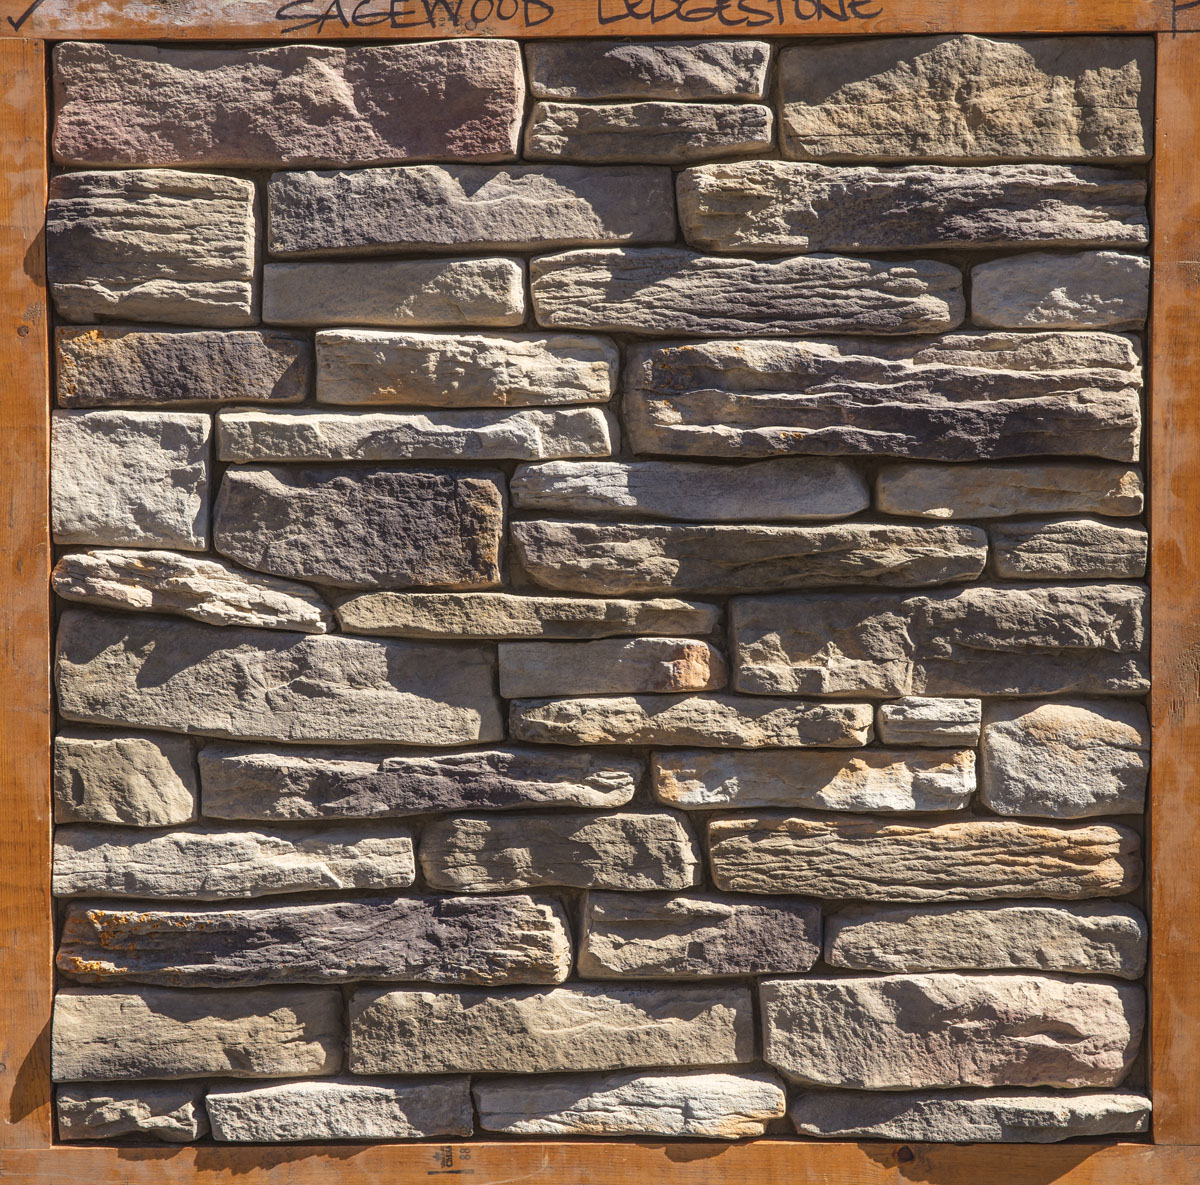 Dutch quality stone ledgestone sagewood corner for Sage wood